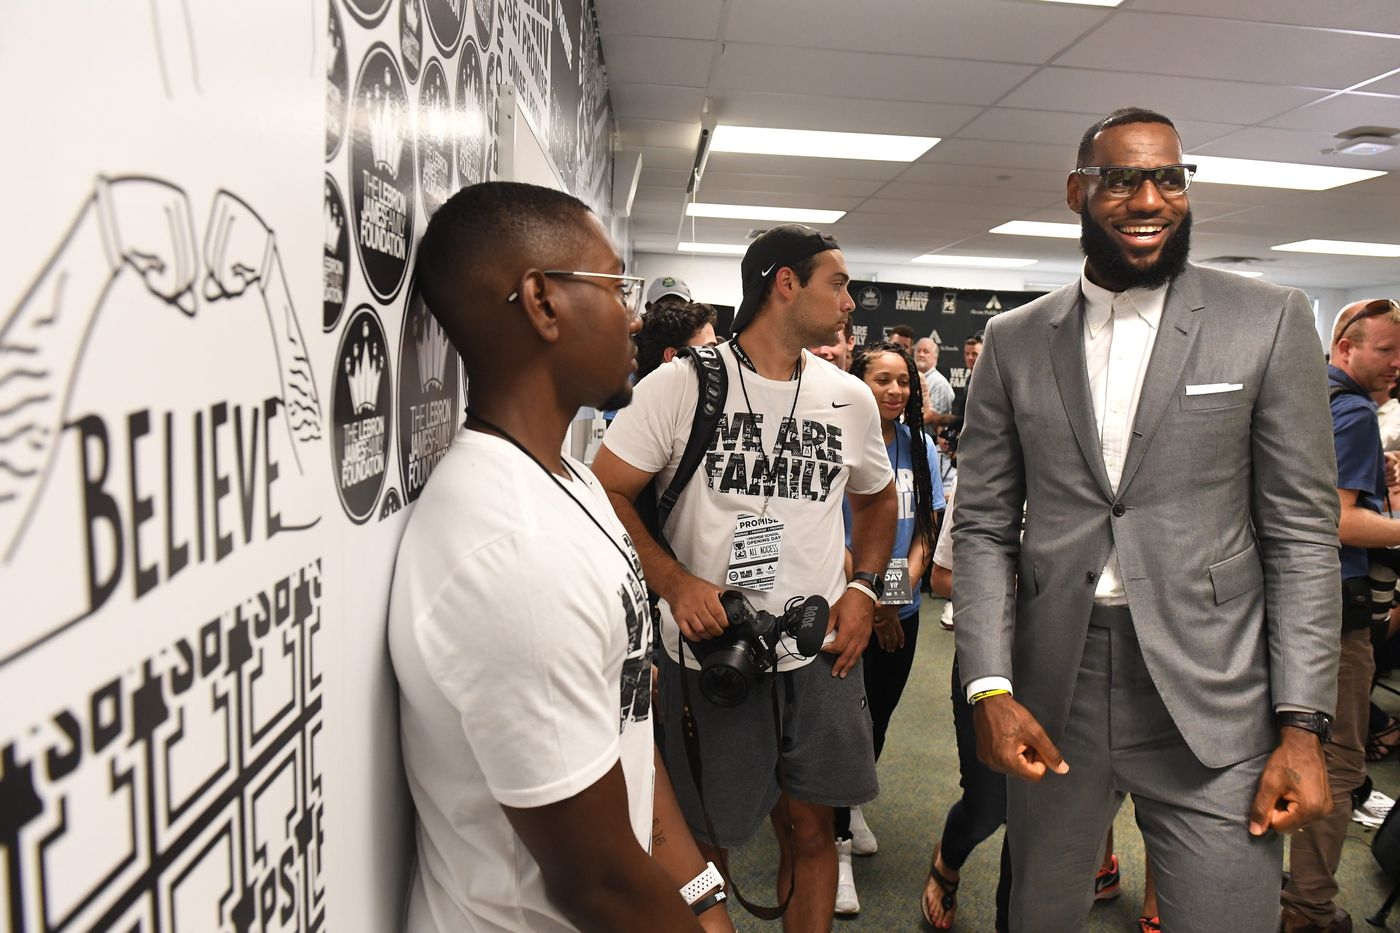 While Jalen Rose throws shade at LeBron James' new school, black students continue to suffer | Opinion